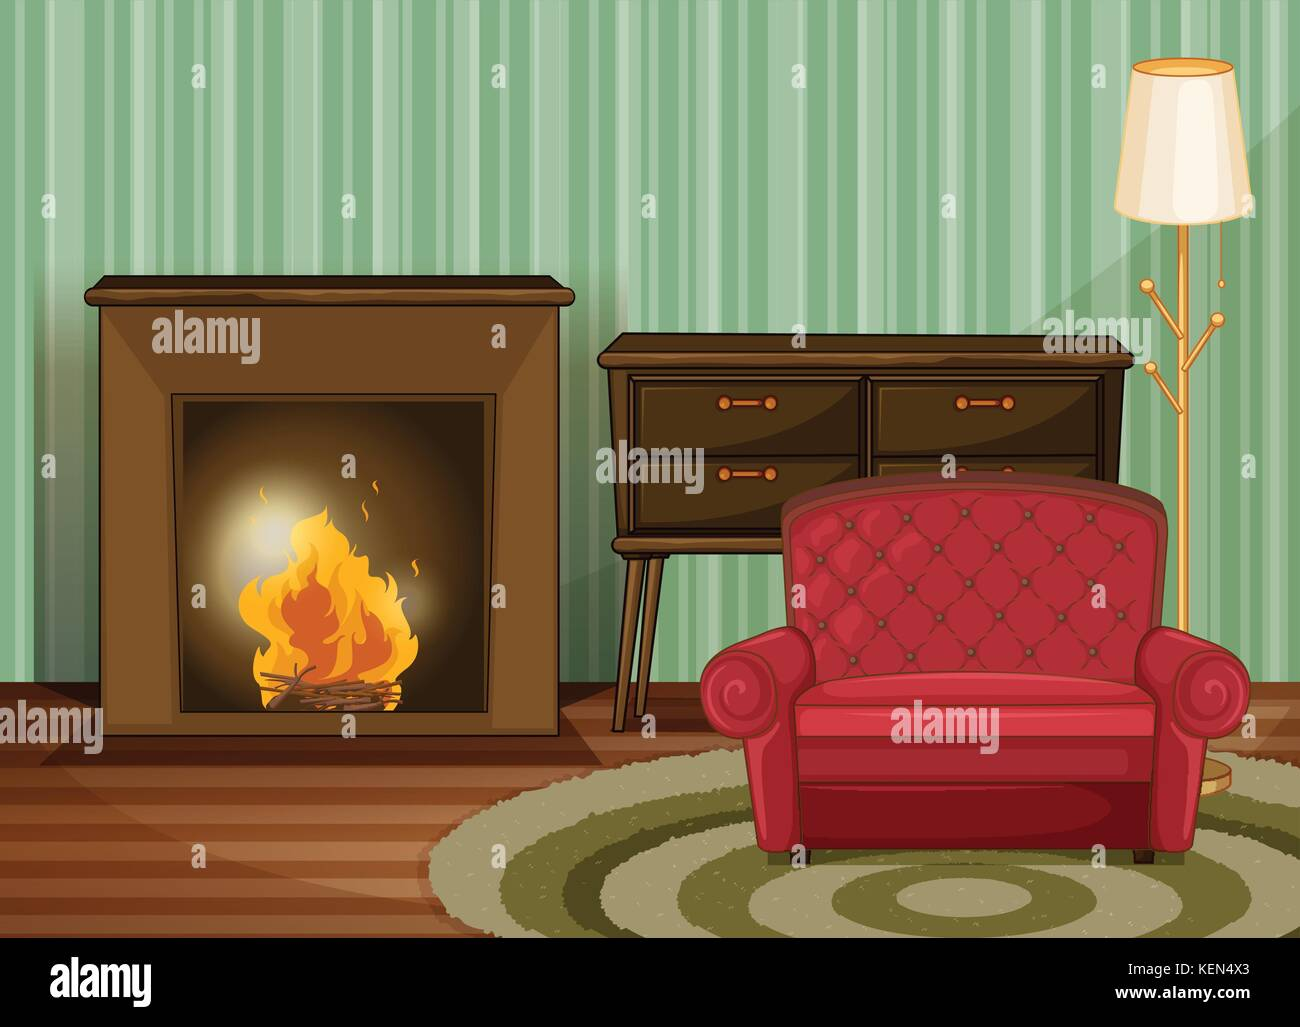 Illustration of a living room with fireplace - Stock Vector